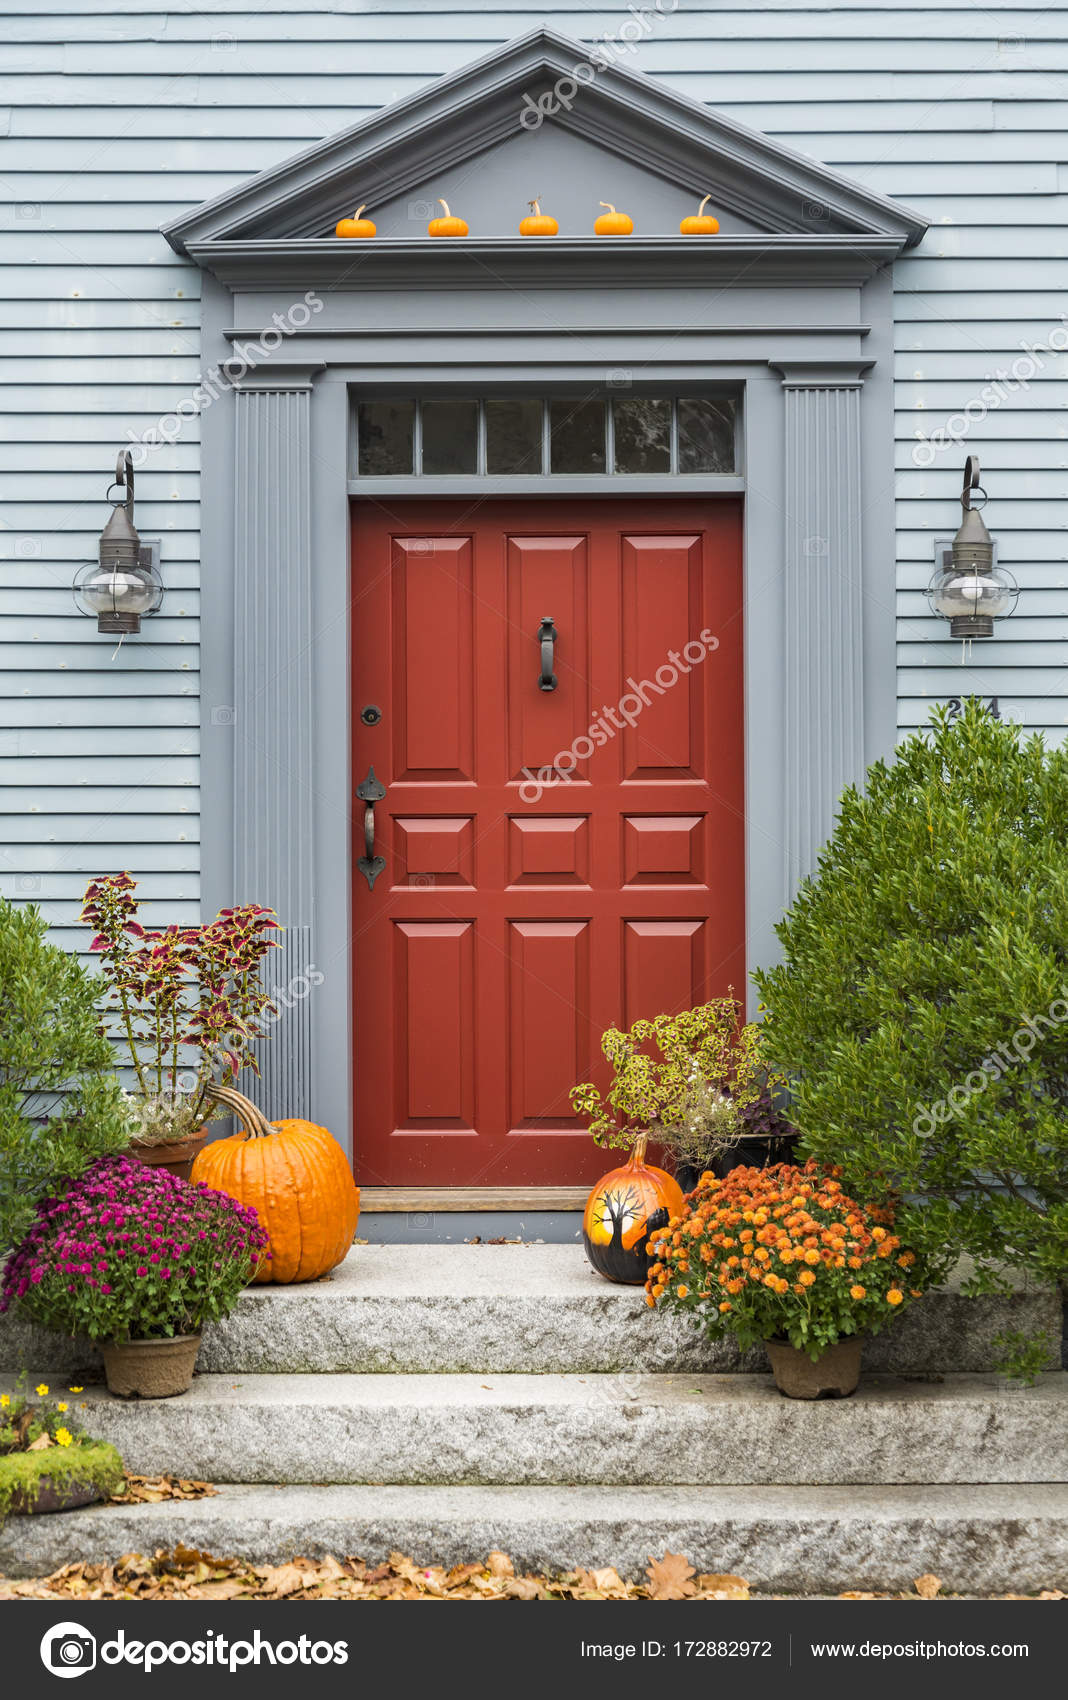 Charmant Door Of A Typical New England Residential House With Small Entrance Garden  U2014 Photo By Edella